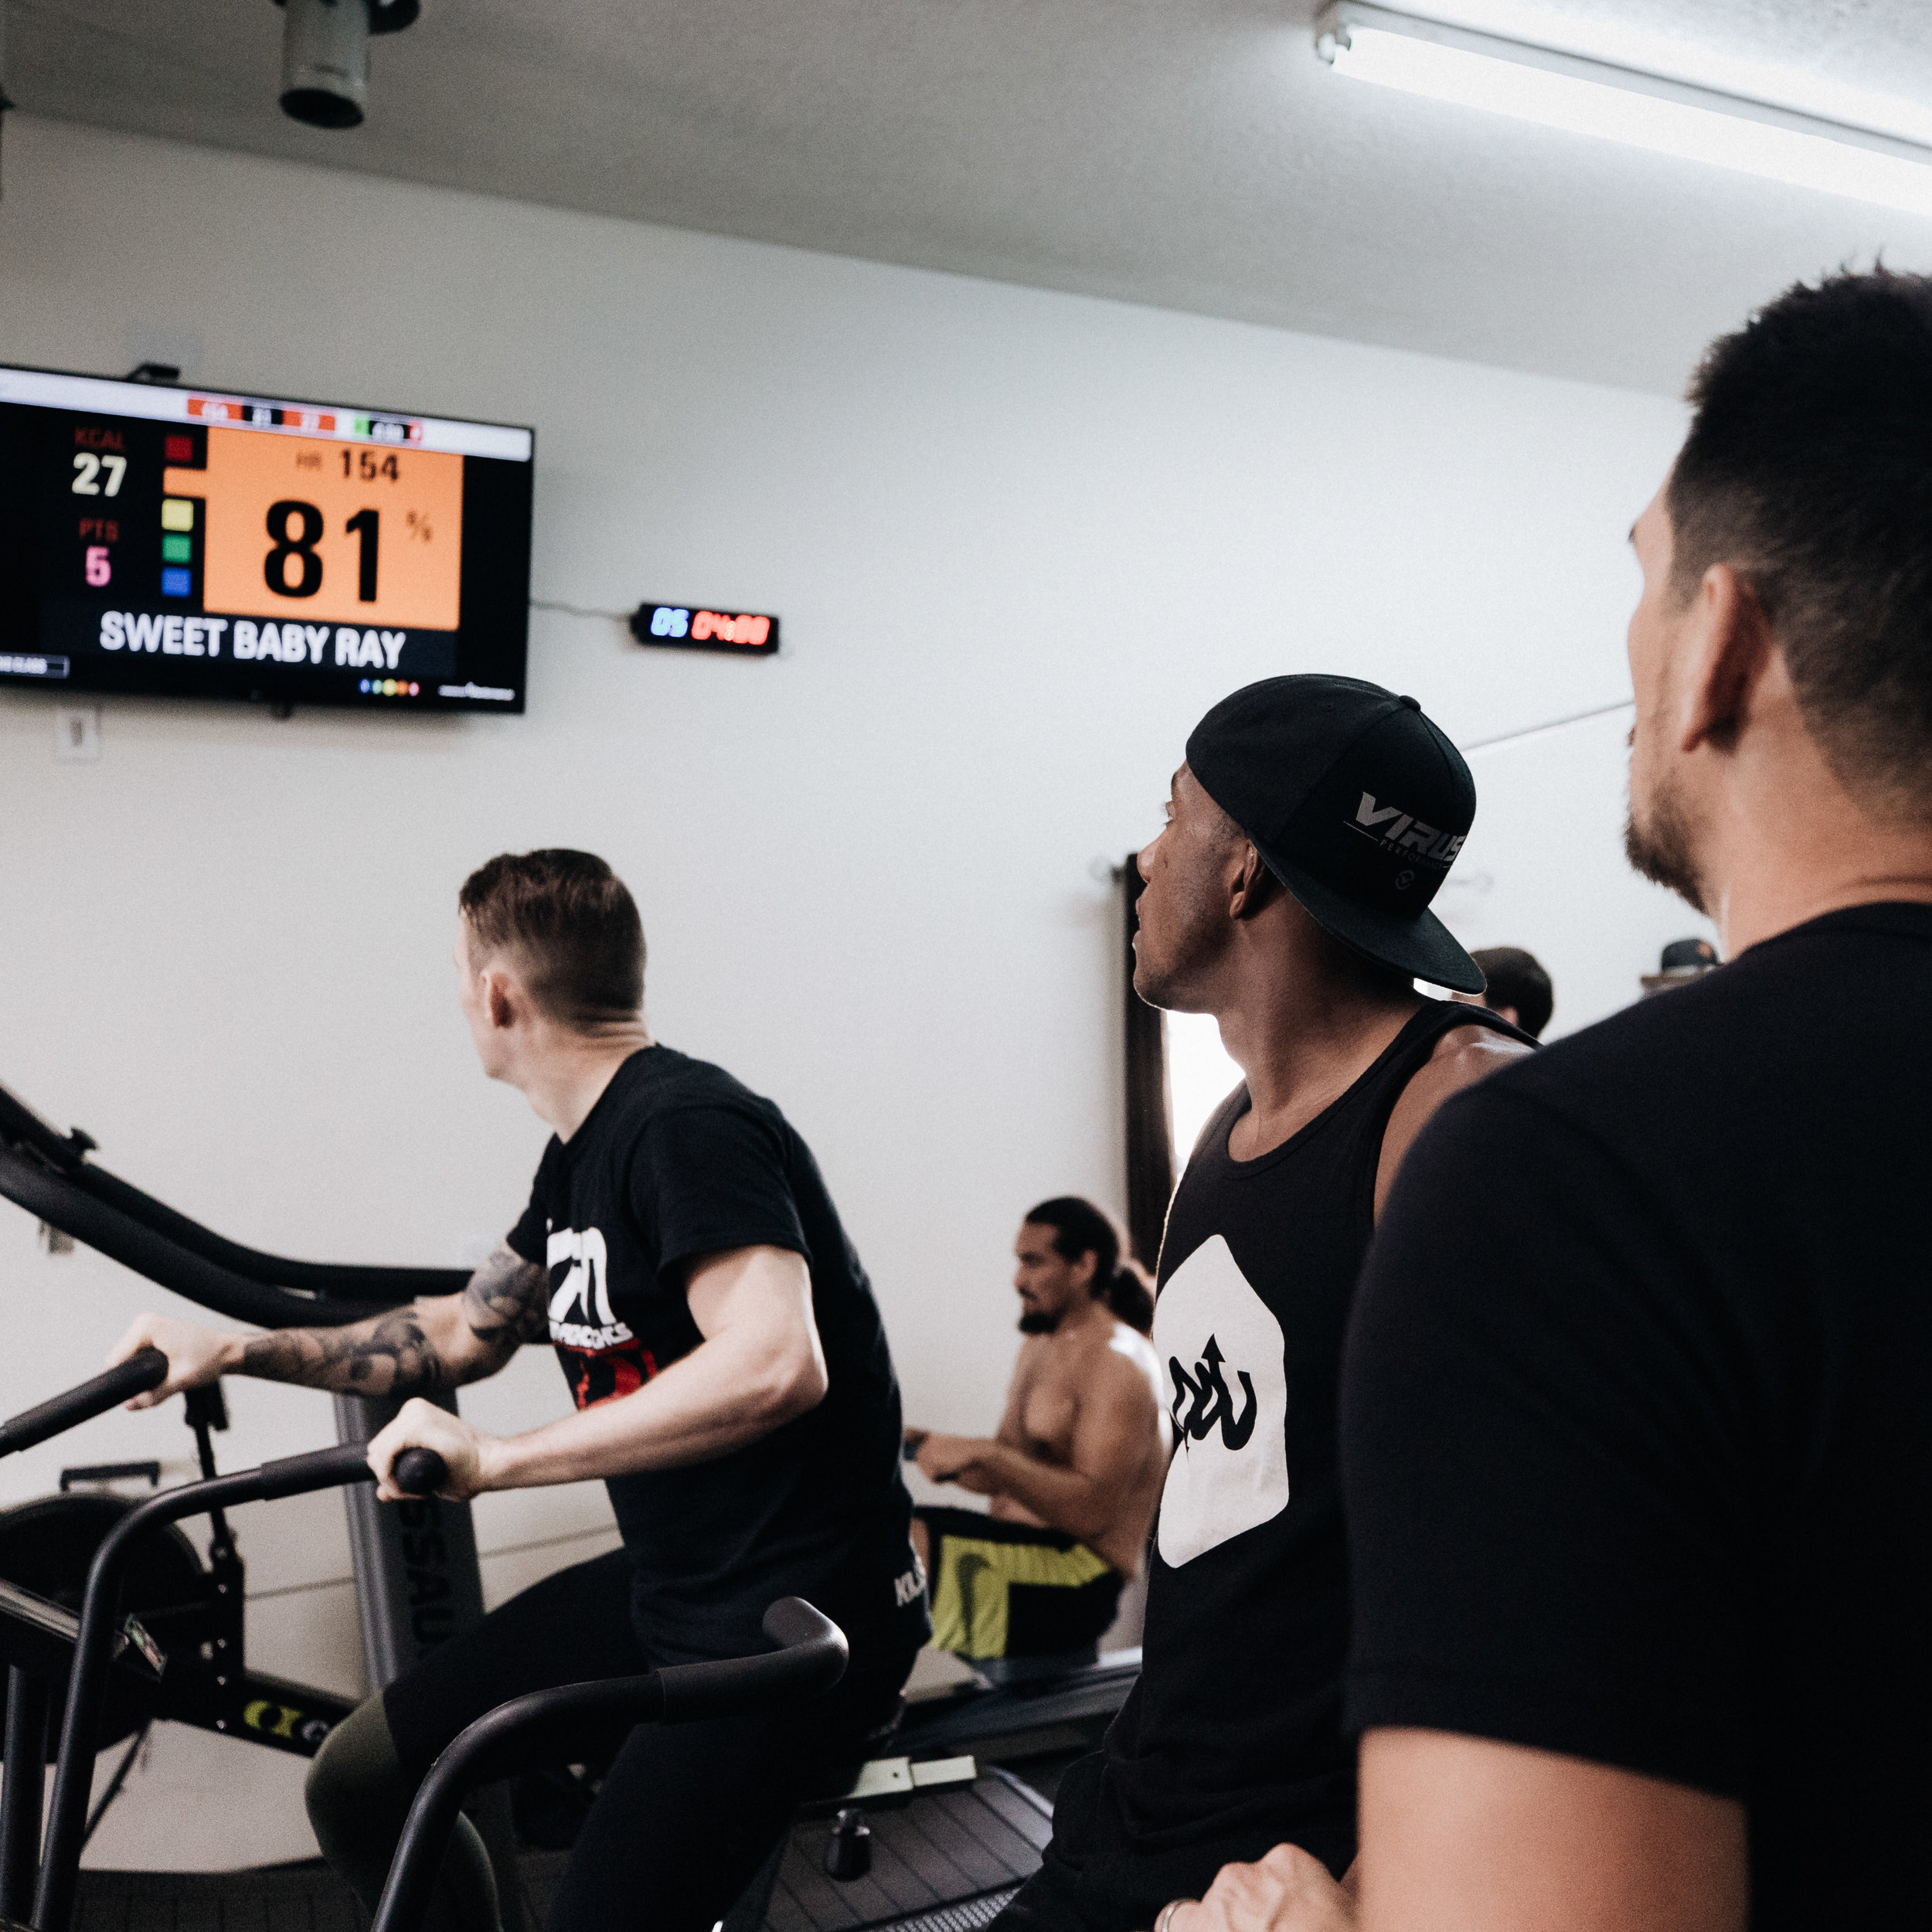 Athlete-Centered Training - We believe that everyone is an athlete regardless of their abilities, so we train everyone like they are an athlete. Every member has the opportunity to own a heart rate monitor, which allows us to properly assess your fitness levels before, during, and after workouts. We also offer V02 Max and RMR Tests to allow you and your coach to design your training plan according to your unique needs. Each member will have a comprehensive Inbody, body composition and skeletal muscle assessment.